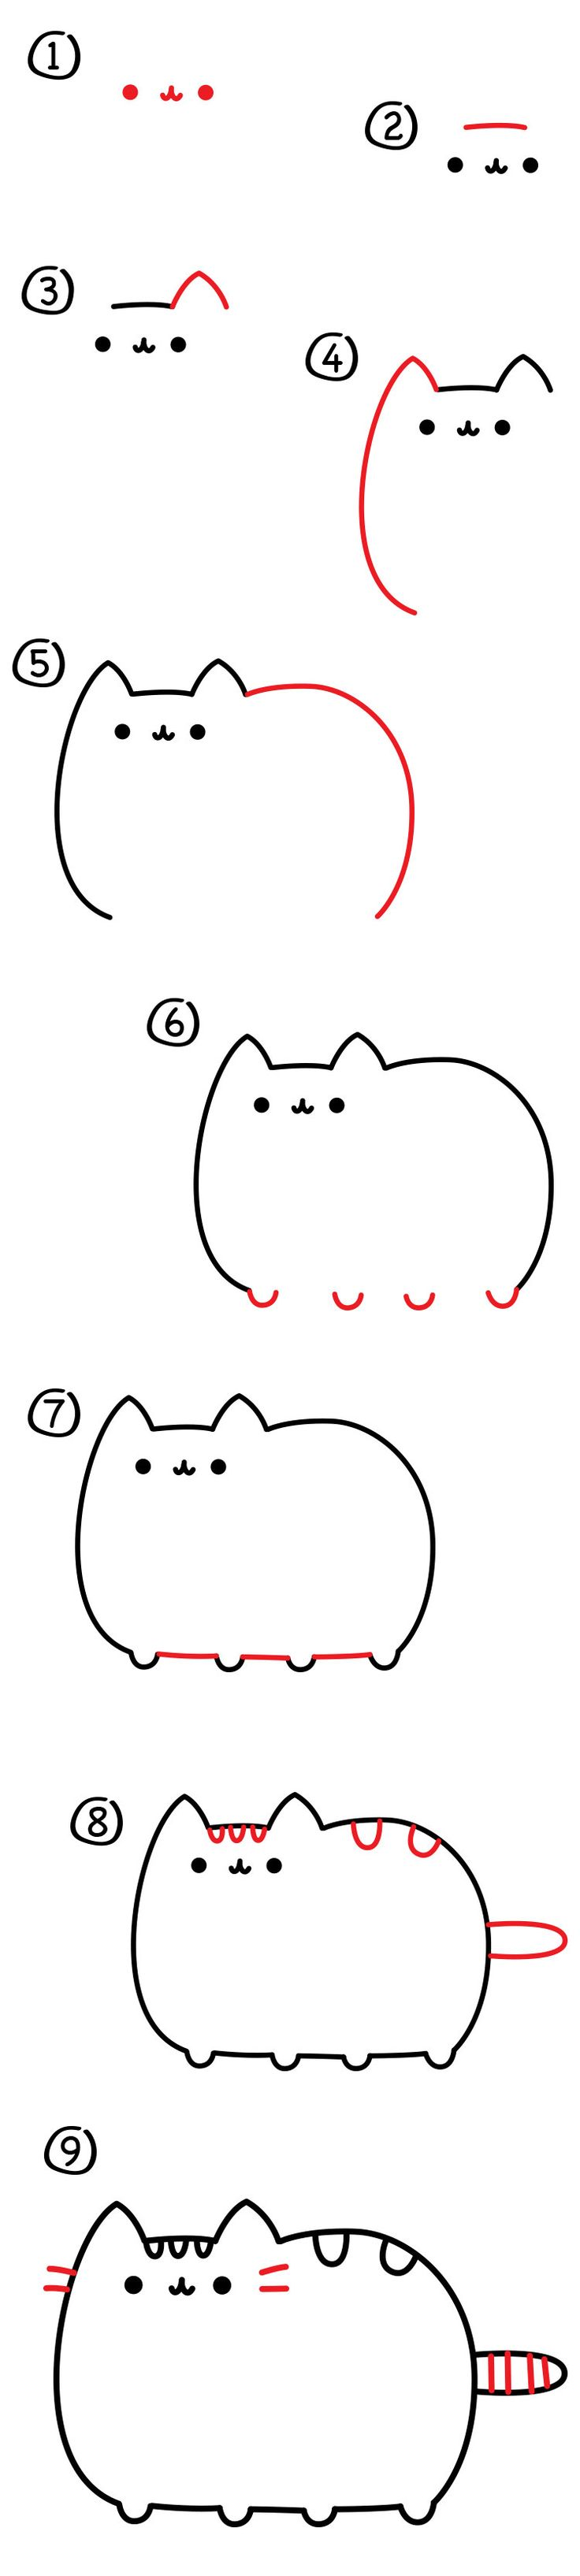 how to draw pusheen Cat • CARTOON DRAWING TIP •